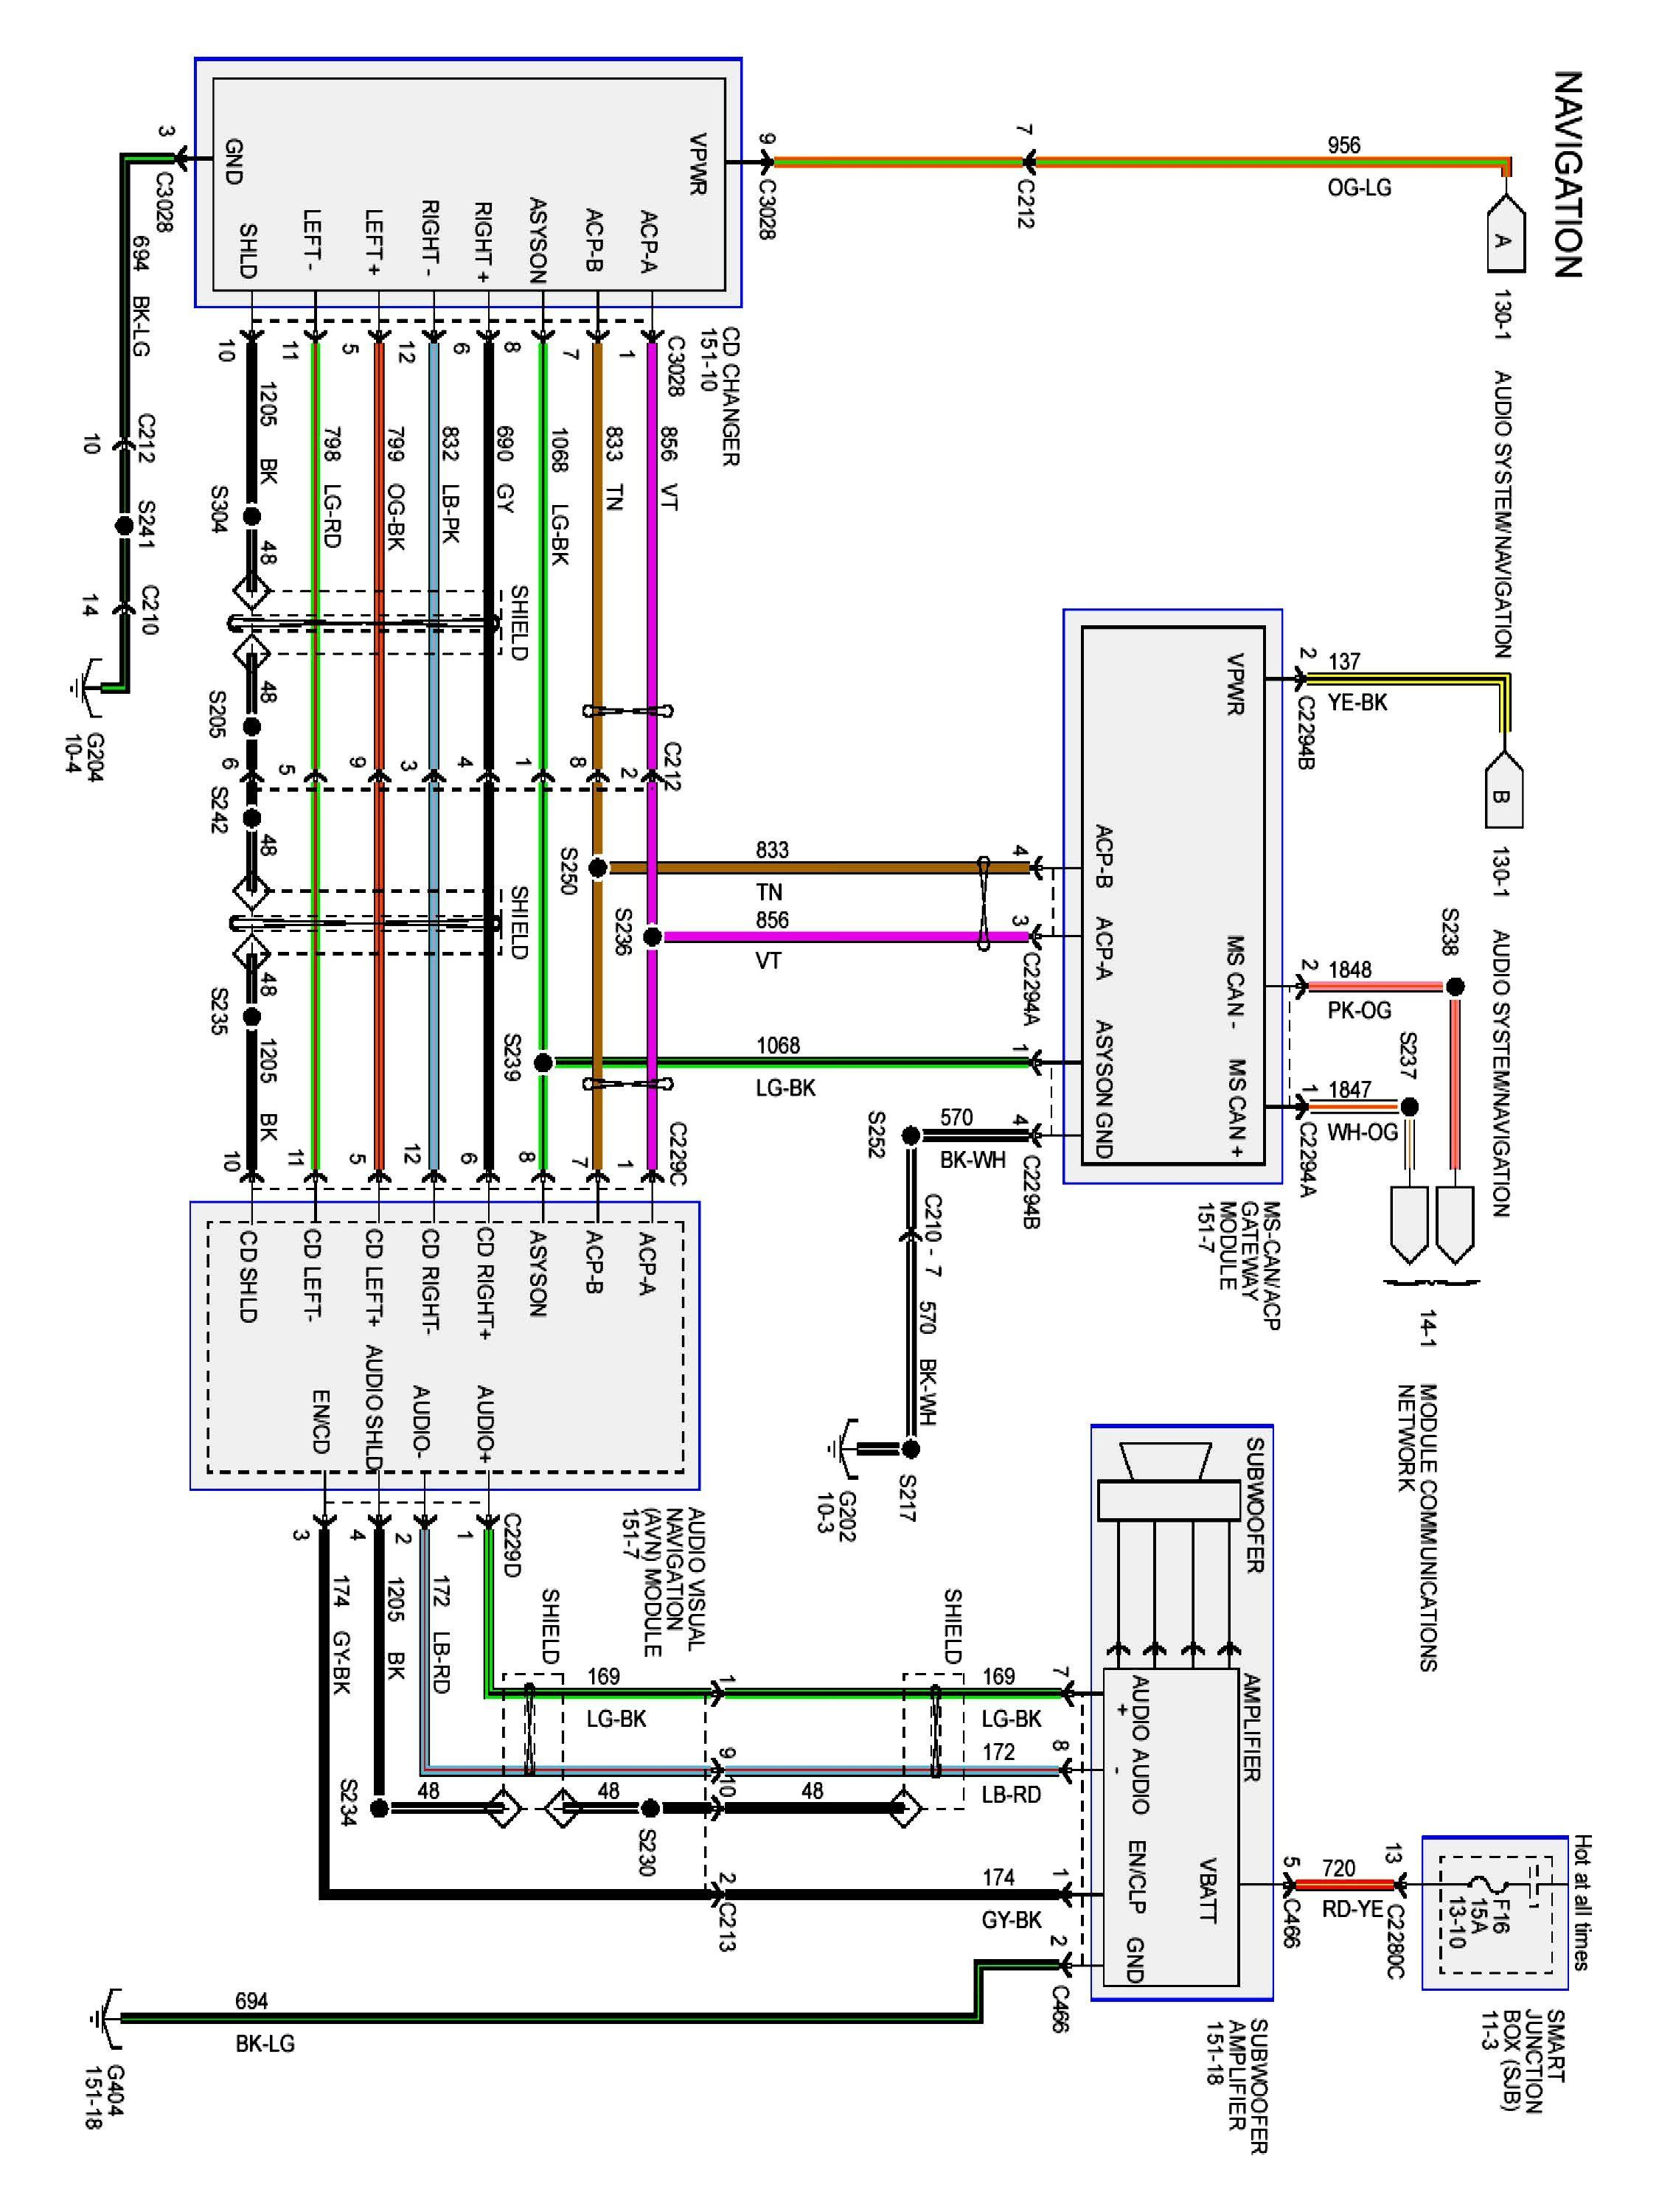 hight resolution of wiring diagram for 2007 camry jbl amp schematic diagram database 2007 camry radio wiring diagram 2007 camry wiring diagram